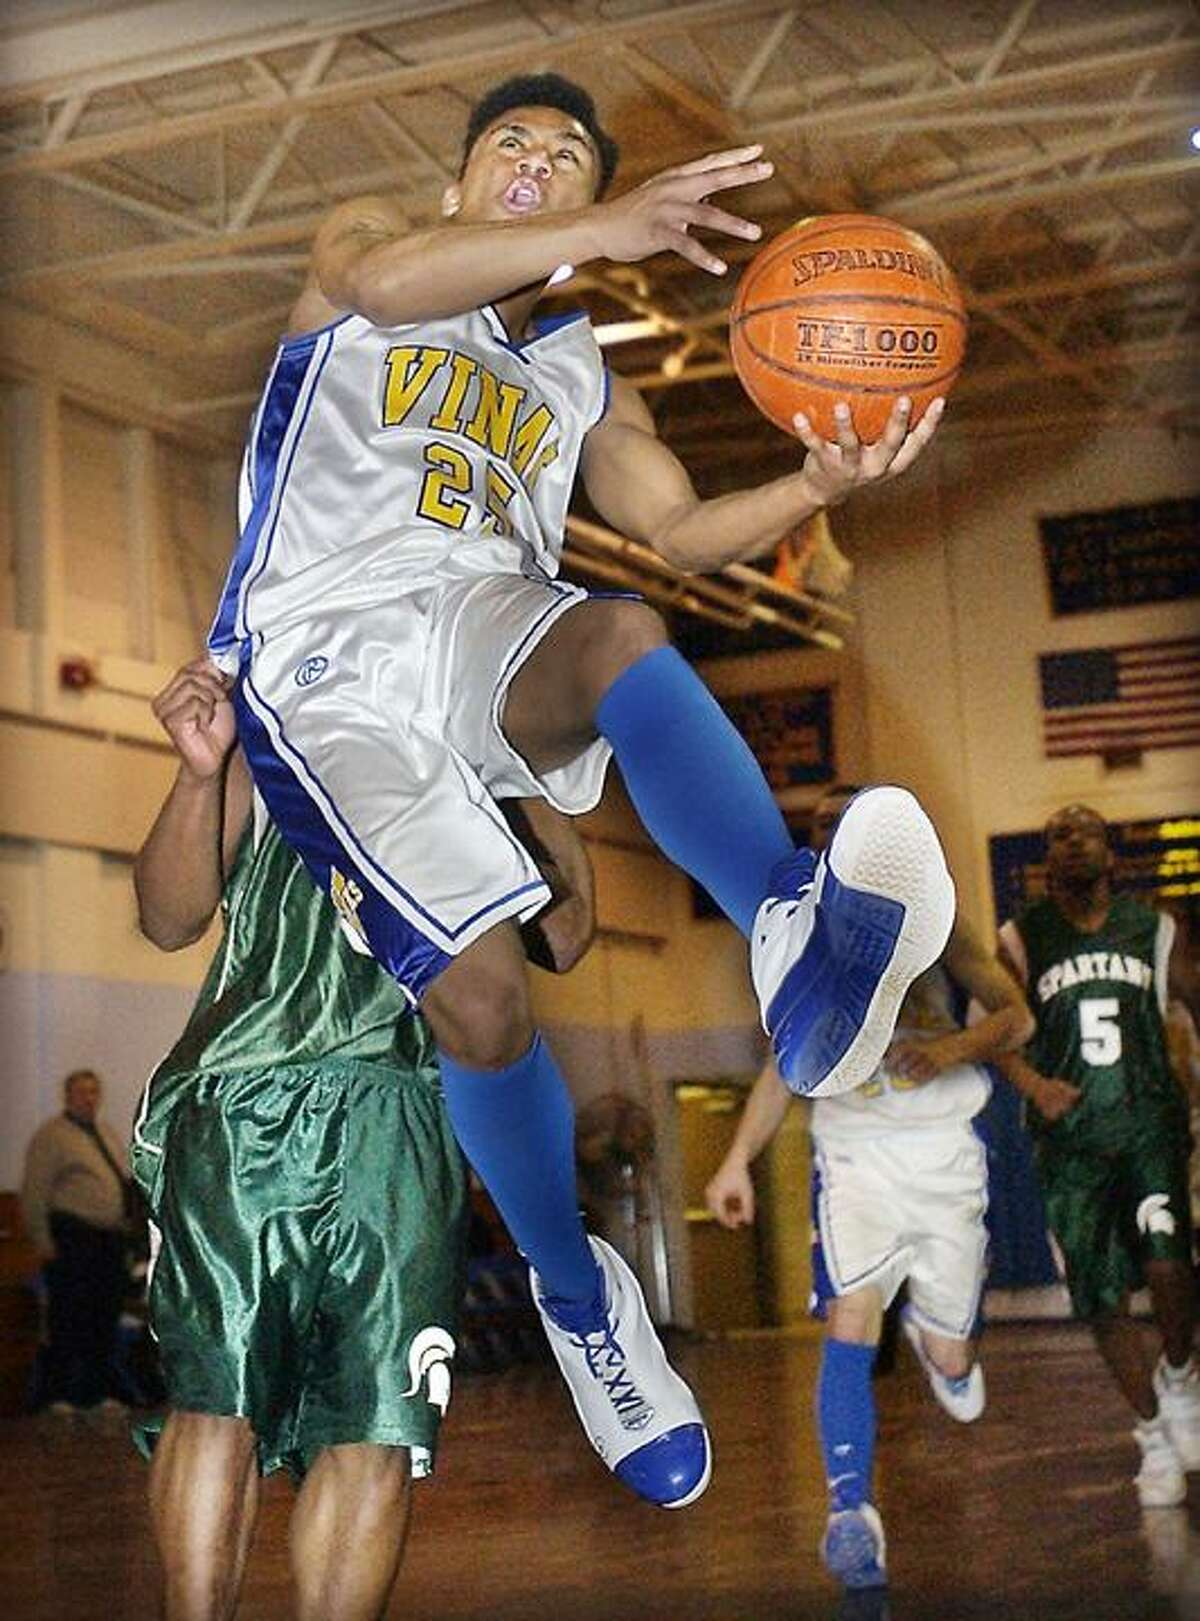 FILE PHOTO - Vinal's Lawrence Young goes up for a shot against Stamford Academy defender Juan Peralta during a home court game in 2009.